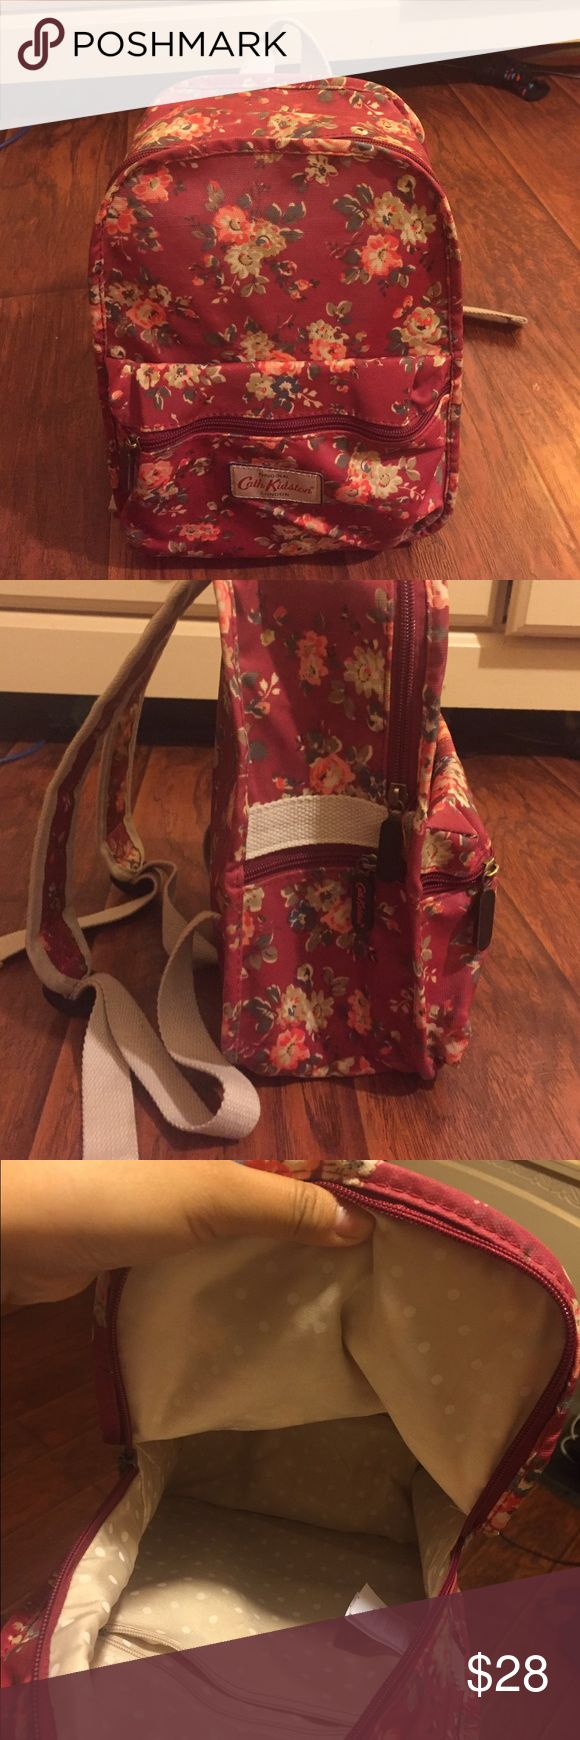 CATH KIDSTON MINI BACKPACK In great condition! Mini backpack.                Dimensions.                                                                 Height: 12 inches                                               Length: 8.5 inches (across the backpack)              Width: About 4 inches cath kidston Bags Mini Bags